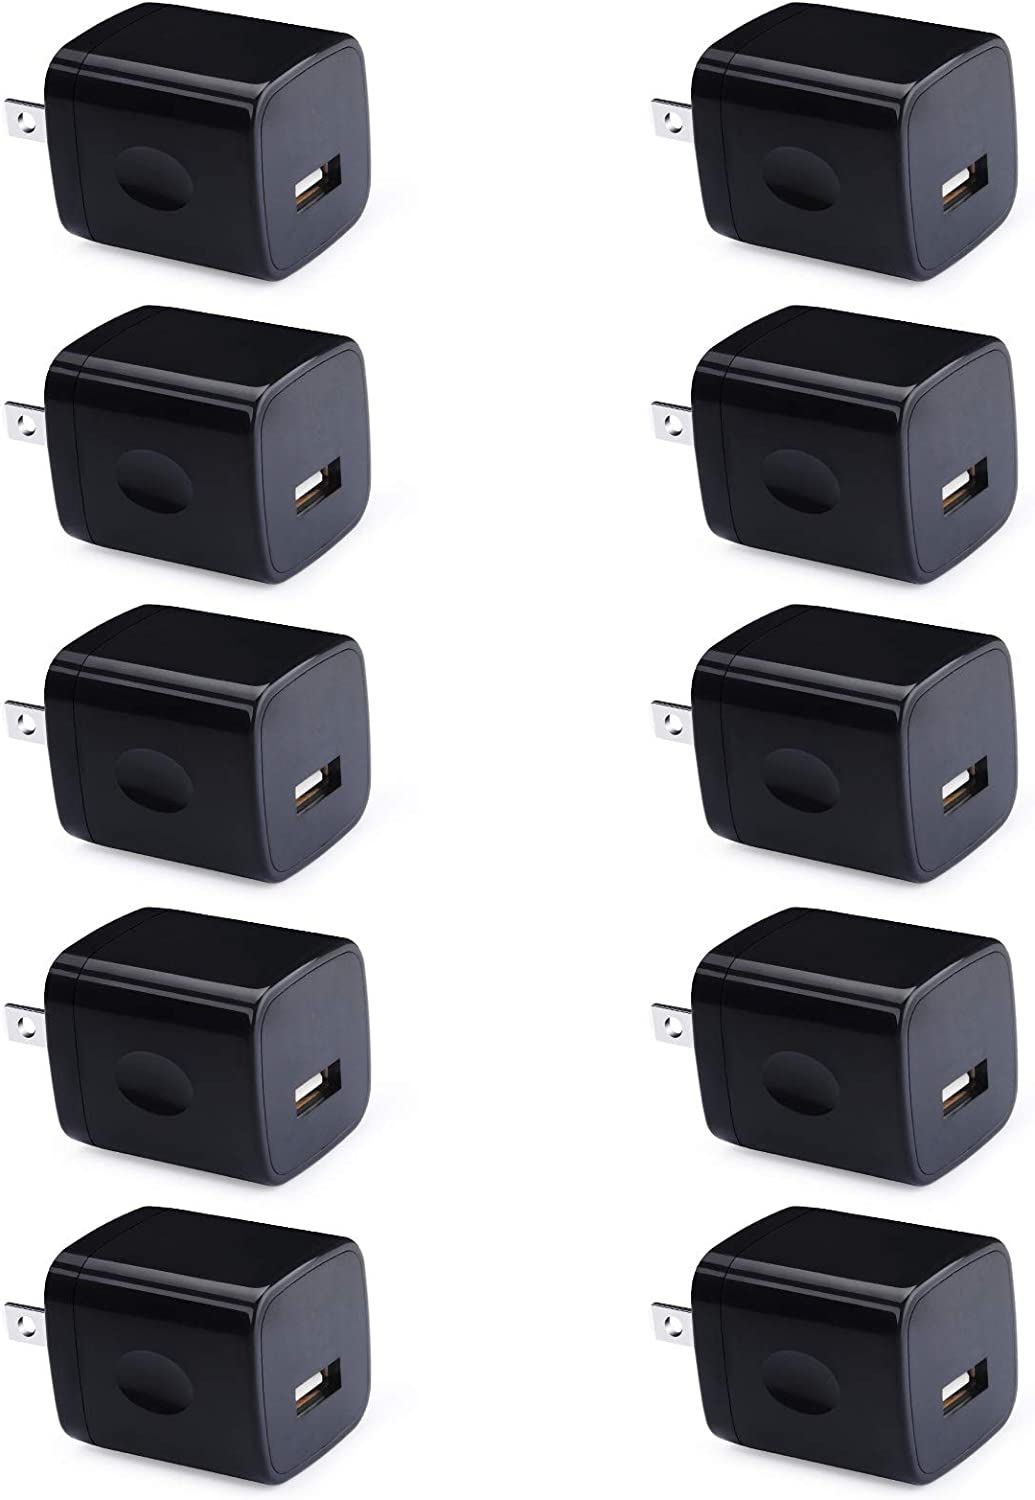 Charger Adapter, UorMe 1A 5V 10 Pack Single Port Wall Charger Power Adapter Cube Block Box Compatible Phone SE (2020) 11 Xs XR X 8 7 6S 6, Samsung Galaxy A20 A71 A51 A31 M51 S10e S9 S8,G8 V70 V35 G6